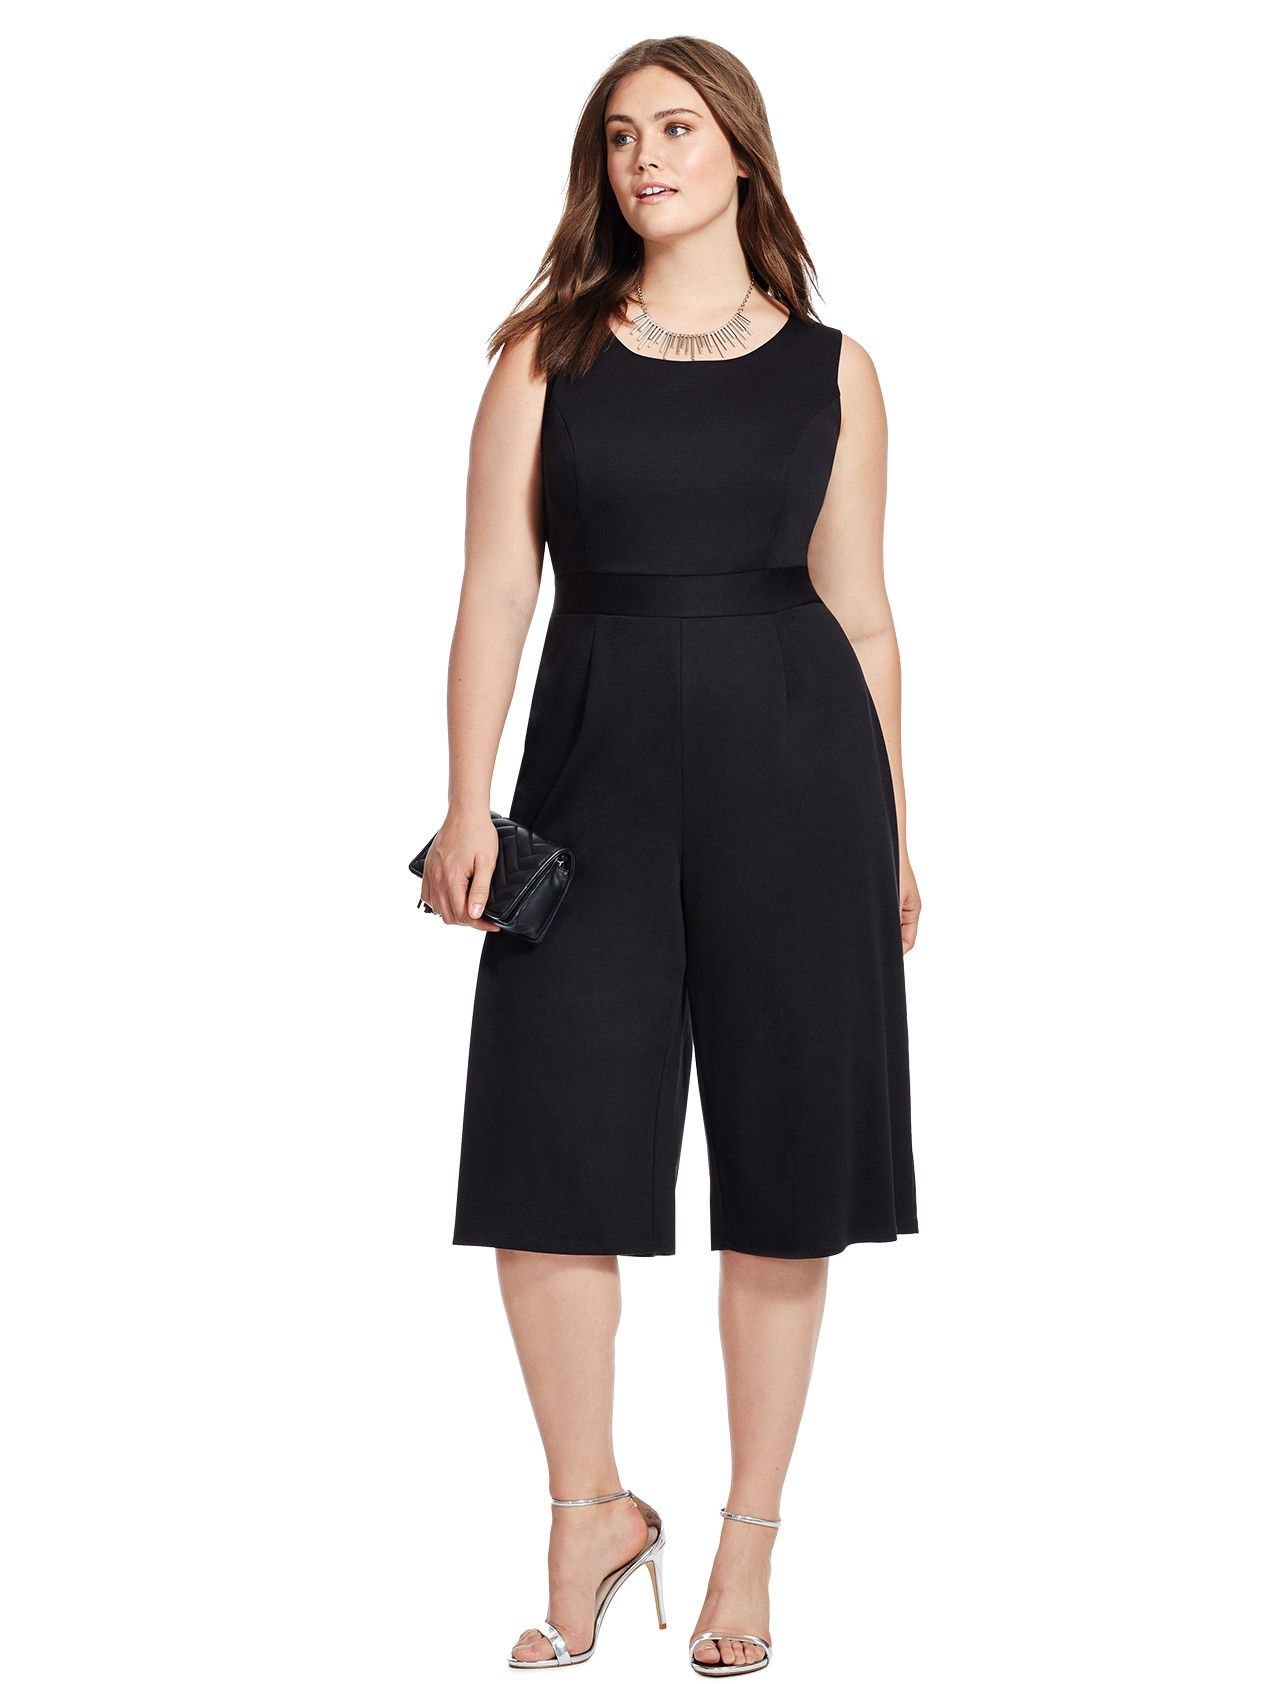 Erin Culotte Jumpsuit by MBN Available in sizes XL and 0X-5X